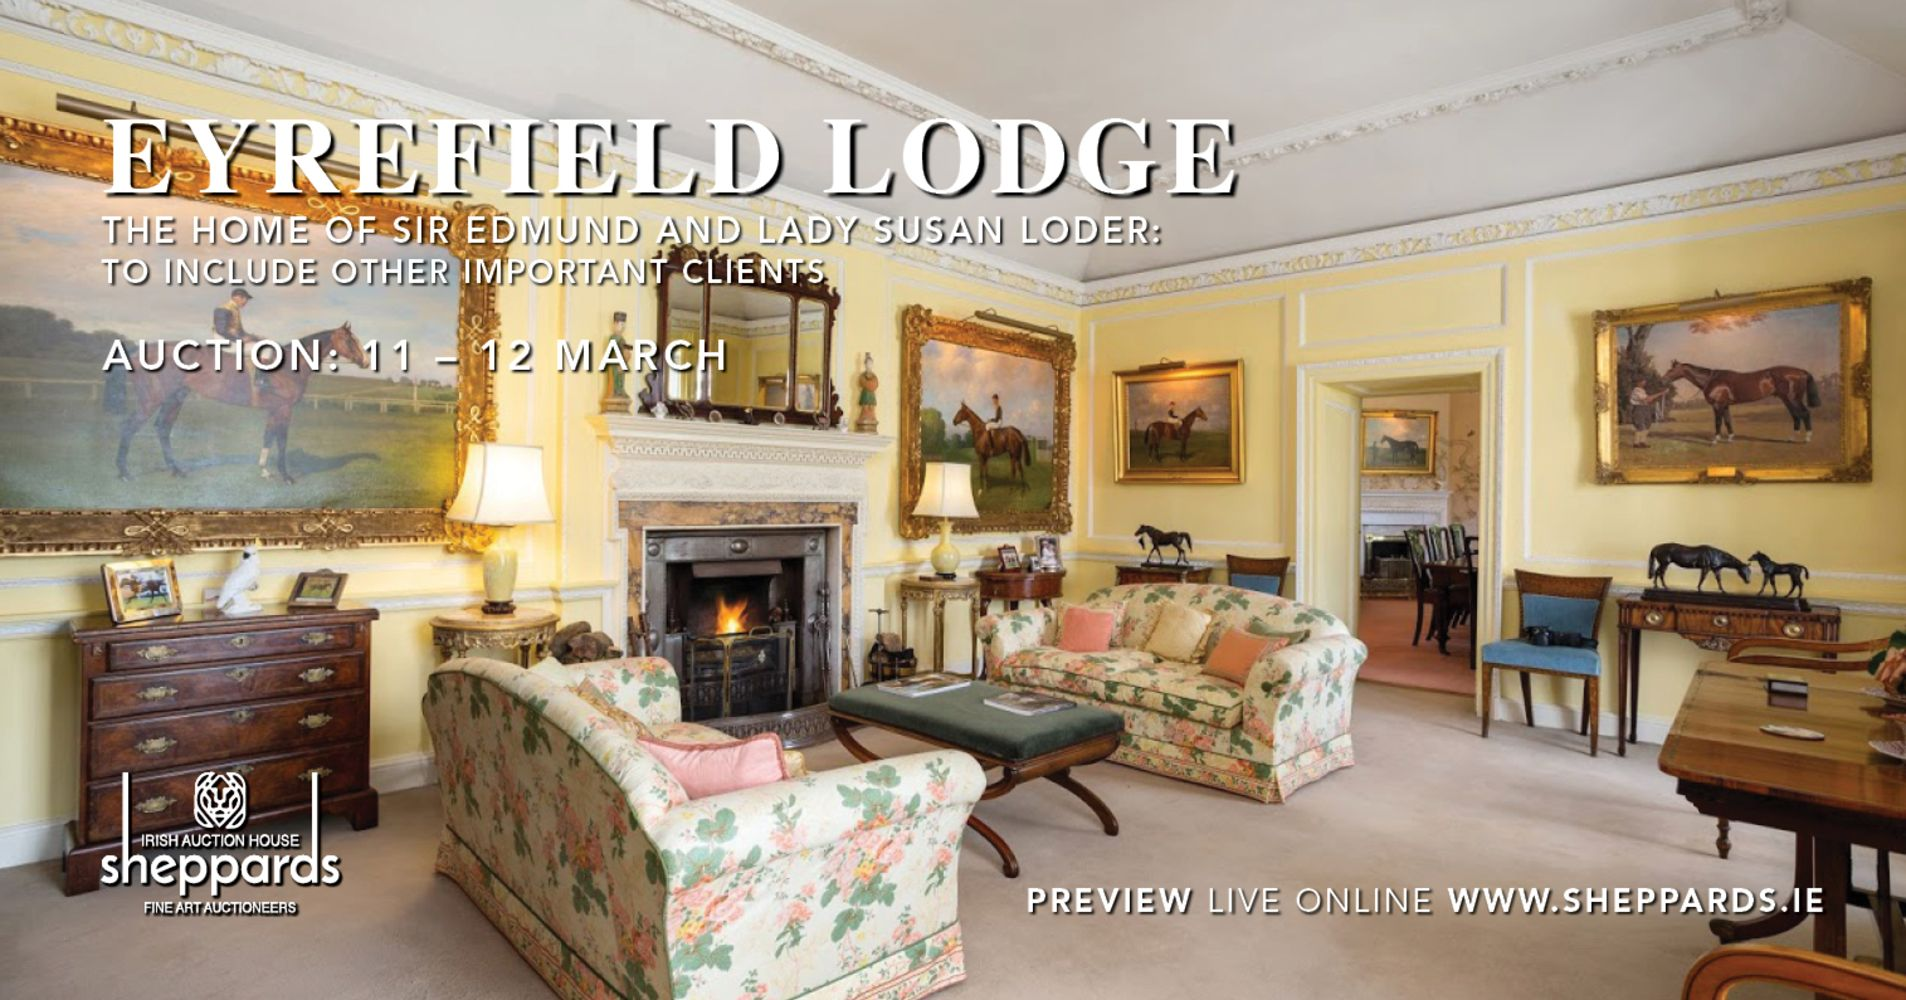 EYREFIELD LODGE | THE HOME OF SIR EDMUND AND LADY SUSAN LODER